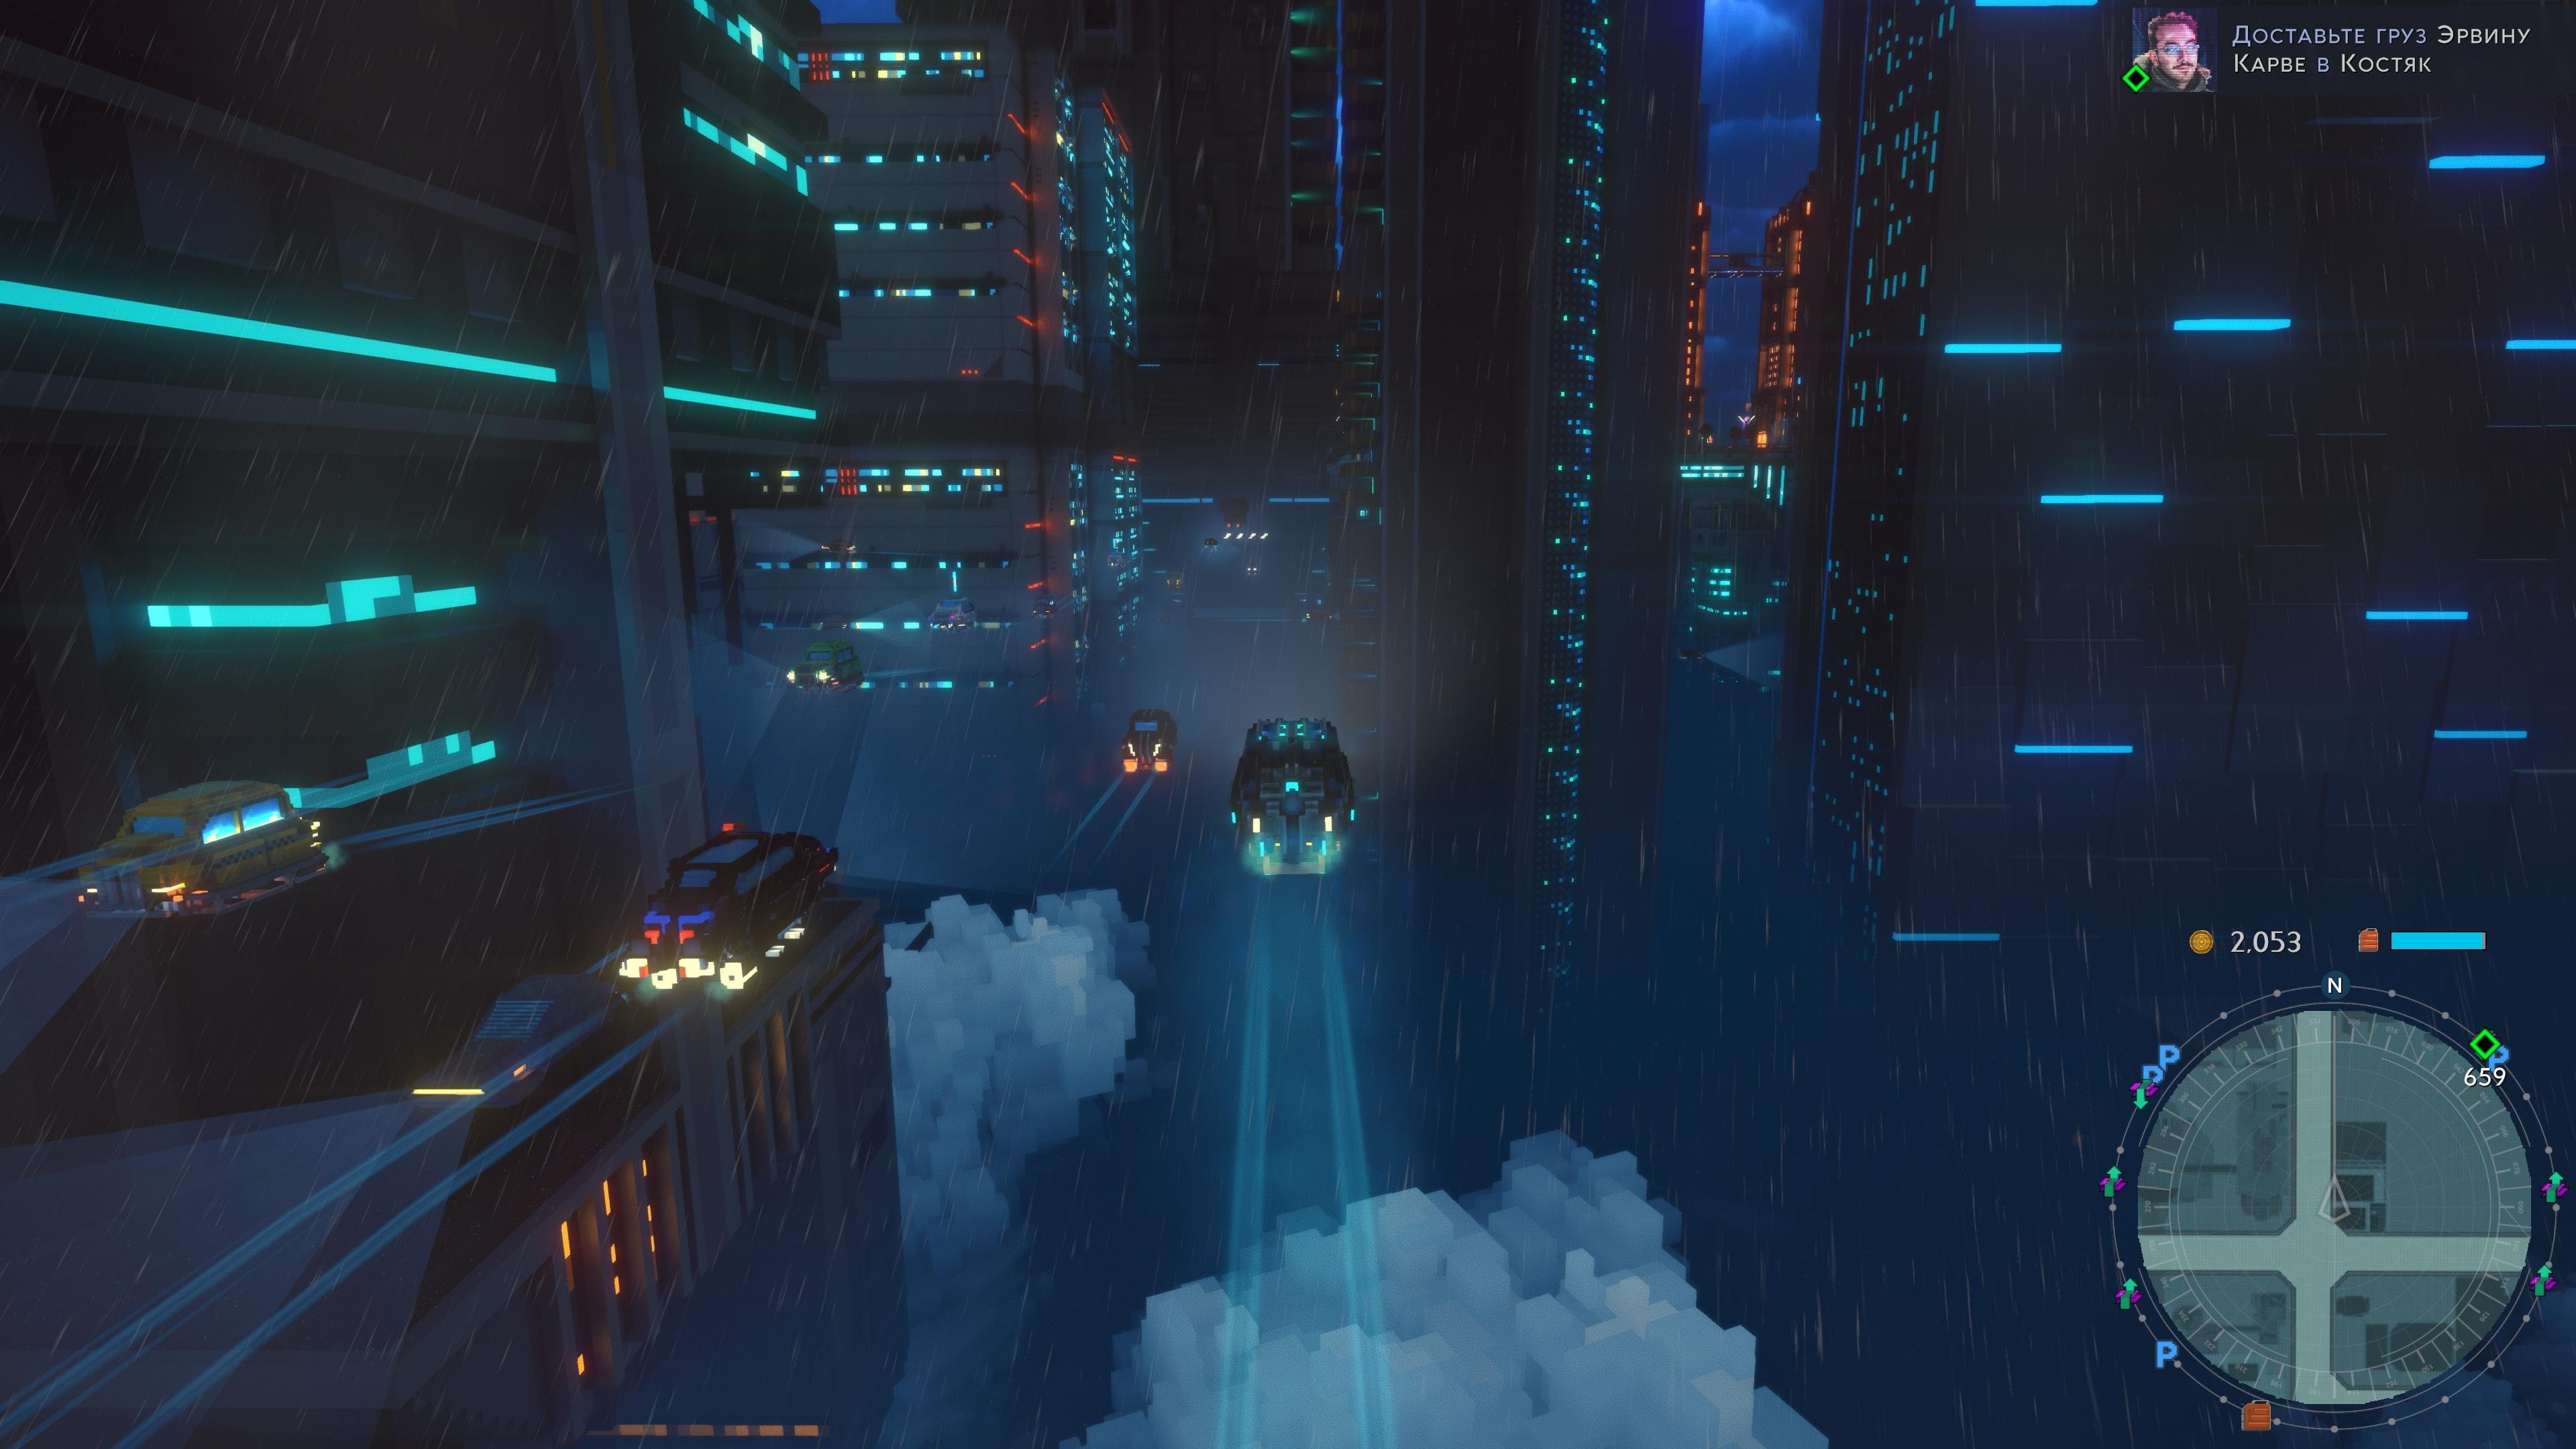 Screenshot for the game Cloudpunk [SKIDROW] (2020) download torrent License